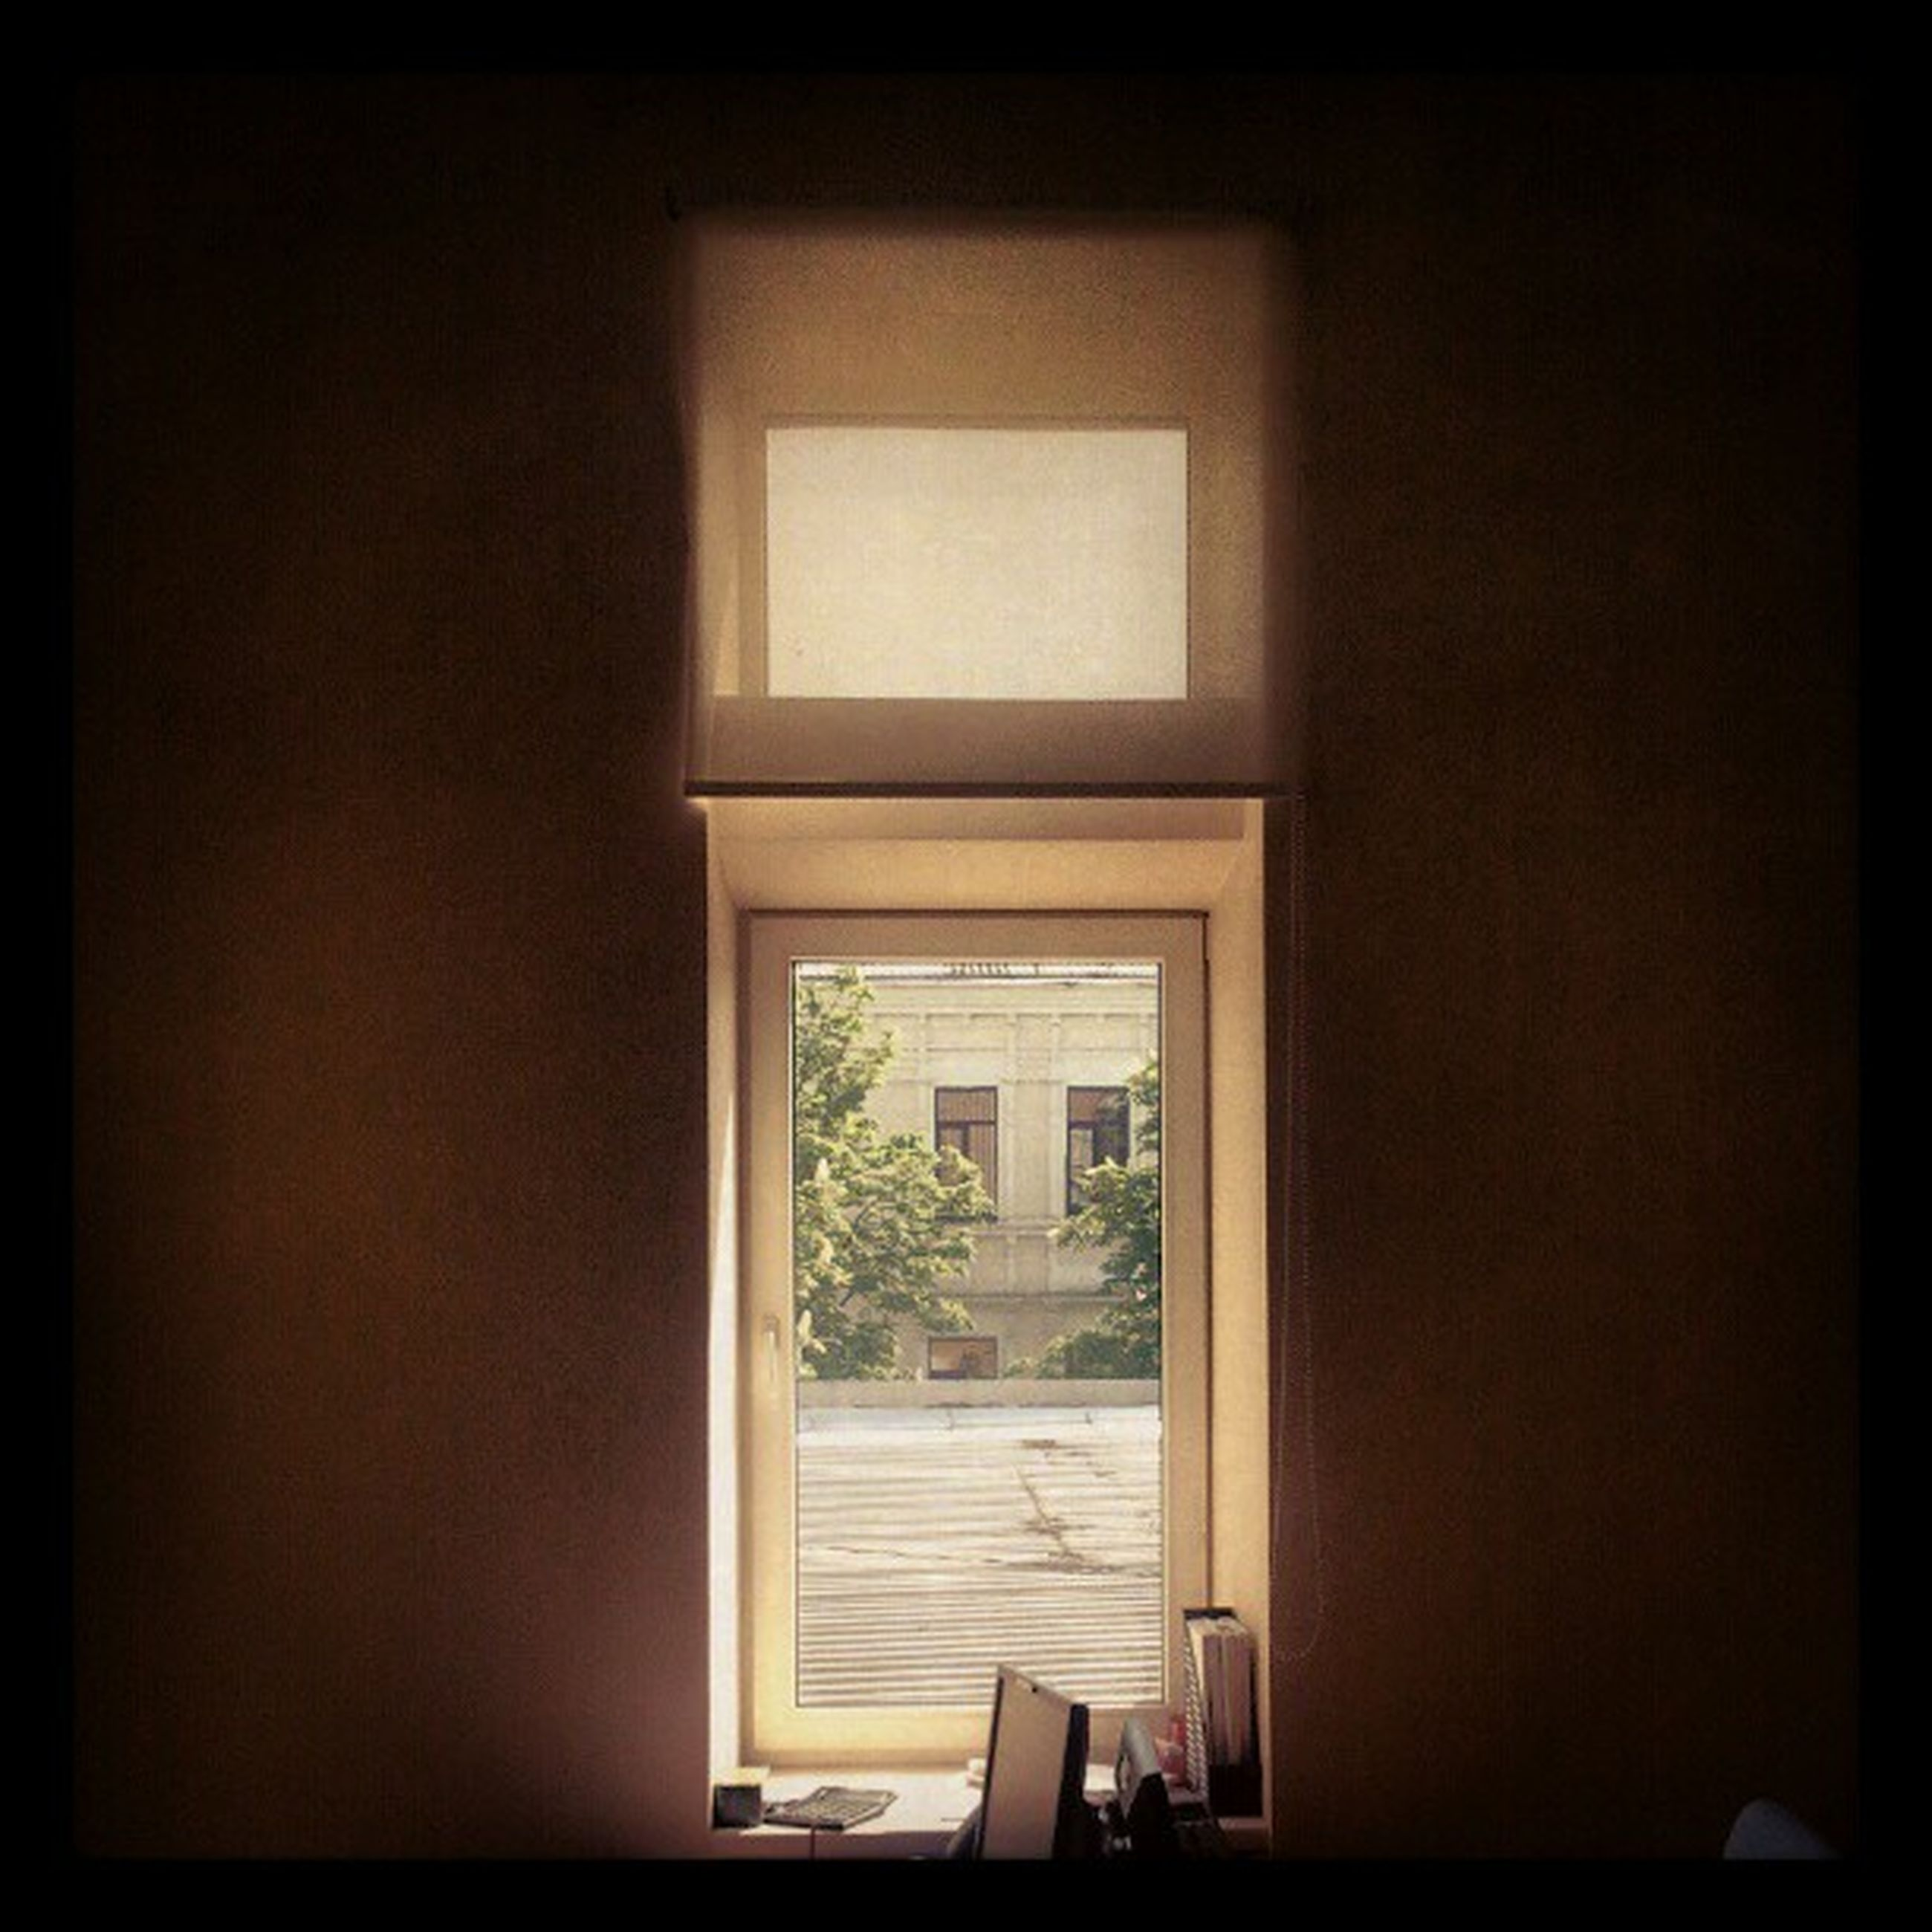 window, indoors, architecture, built structure, house, building exterior, residential structure, home interior, residential building, door, glass - material, day, no people, closed, open, building, wall, absence, transparent, sunlight